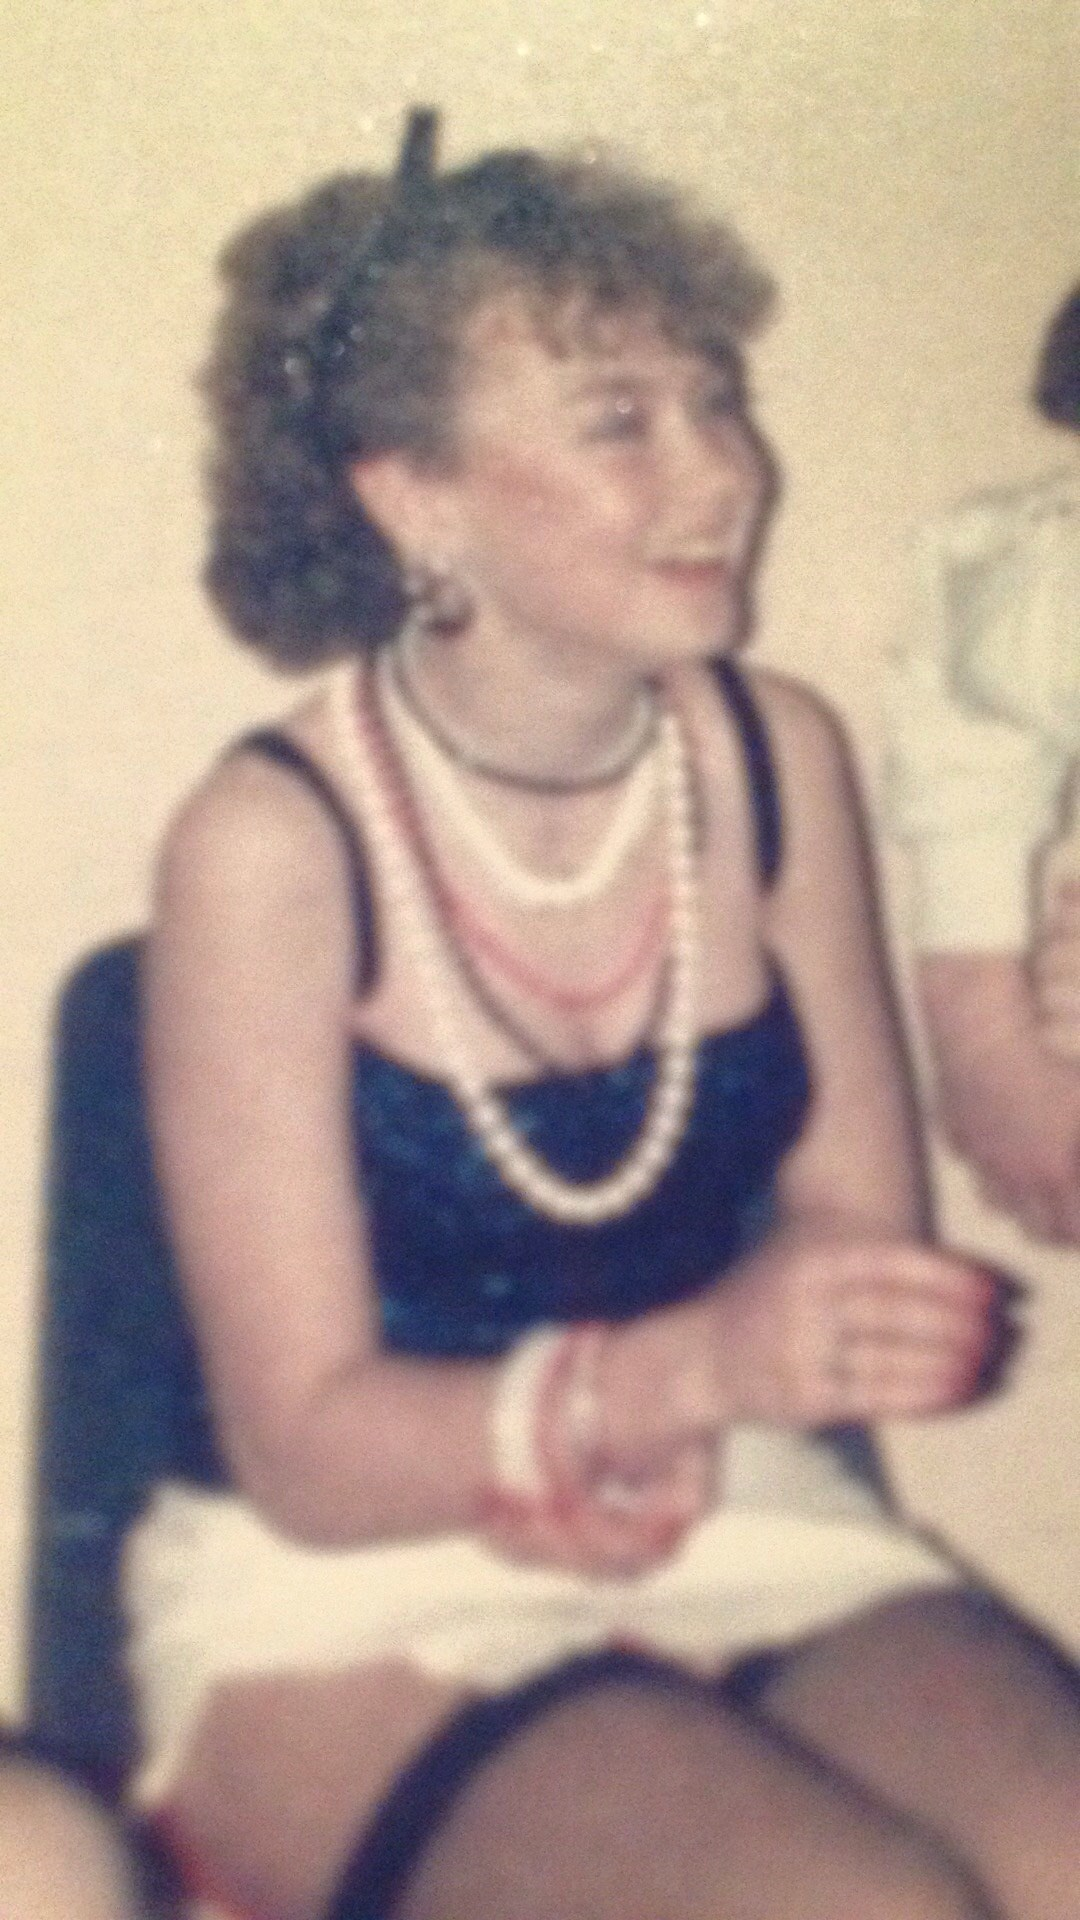 Kate at our Tart and Tramp party when we were 13